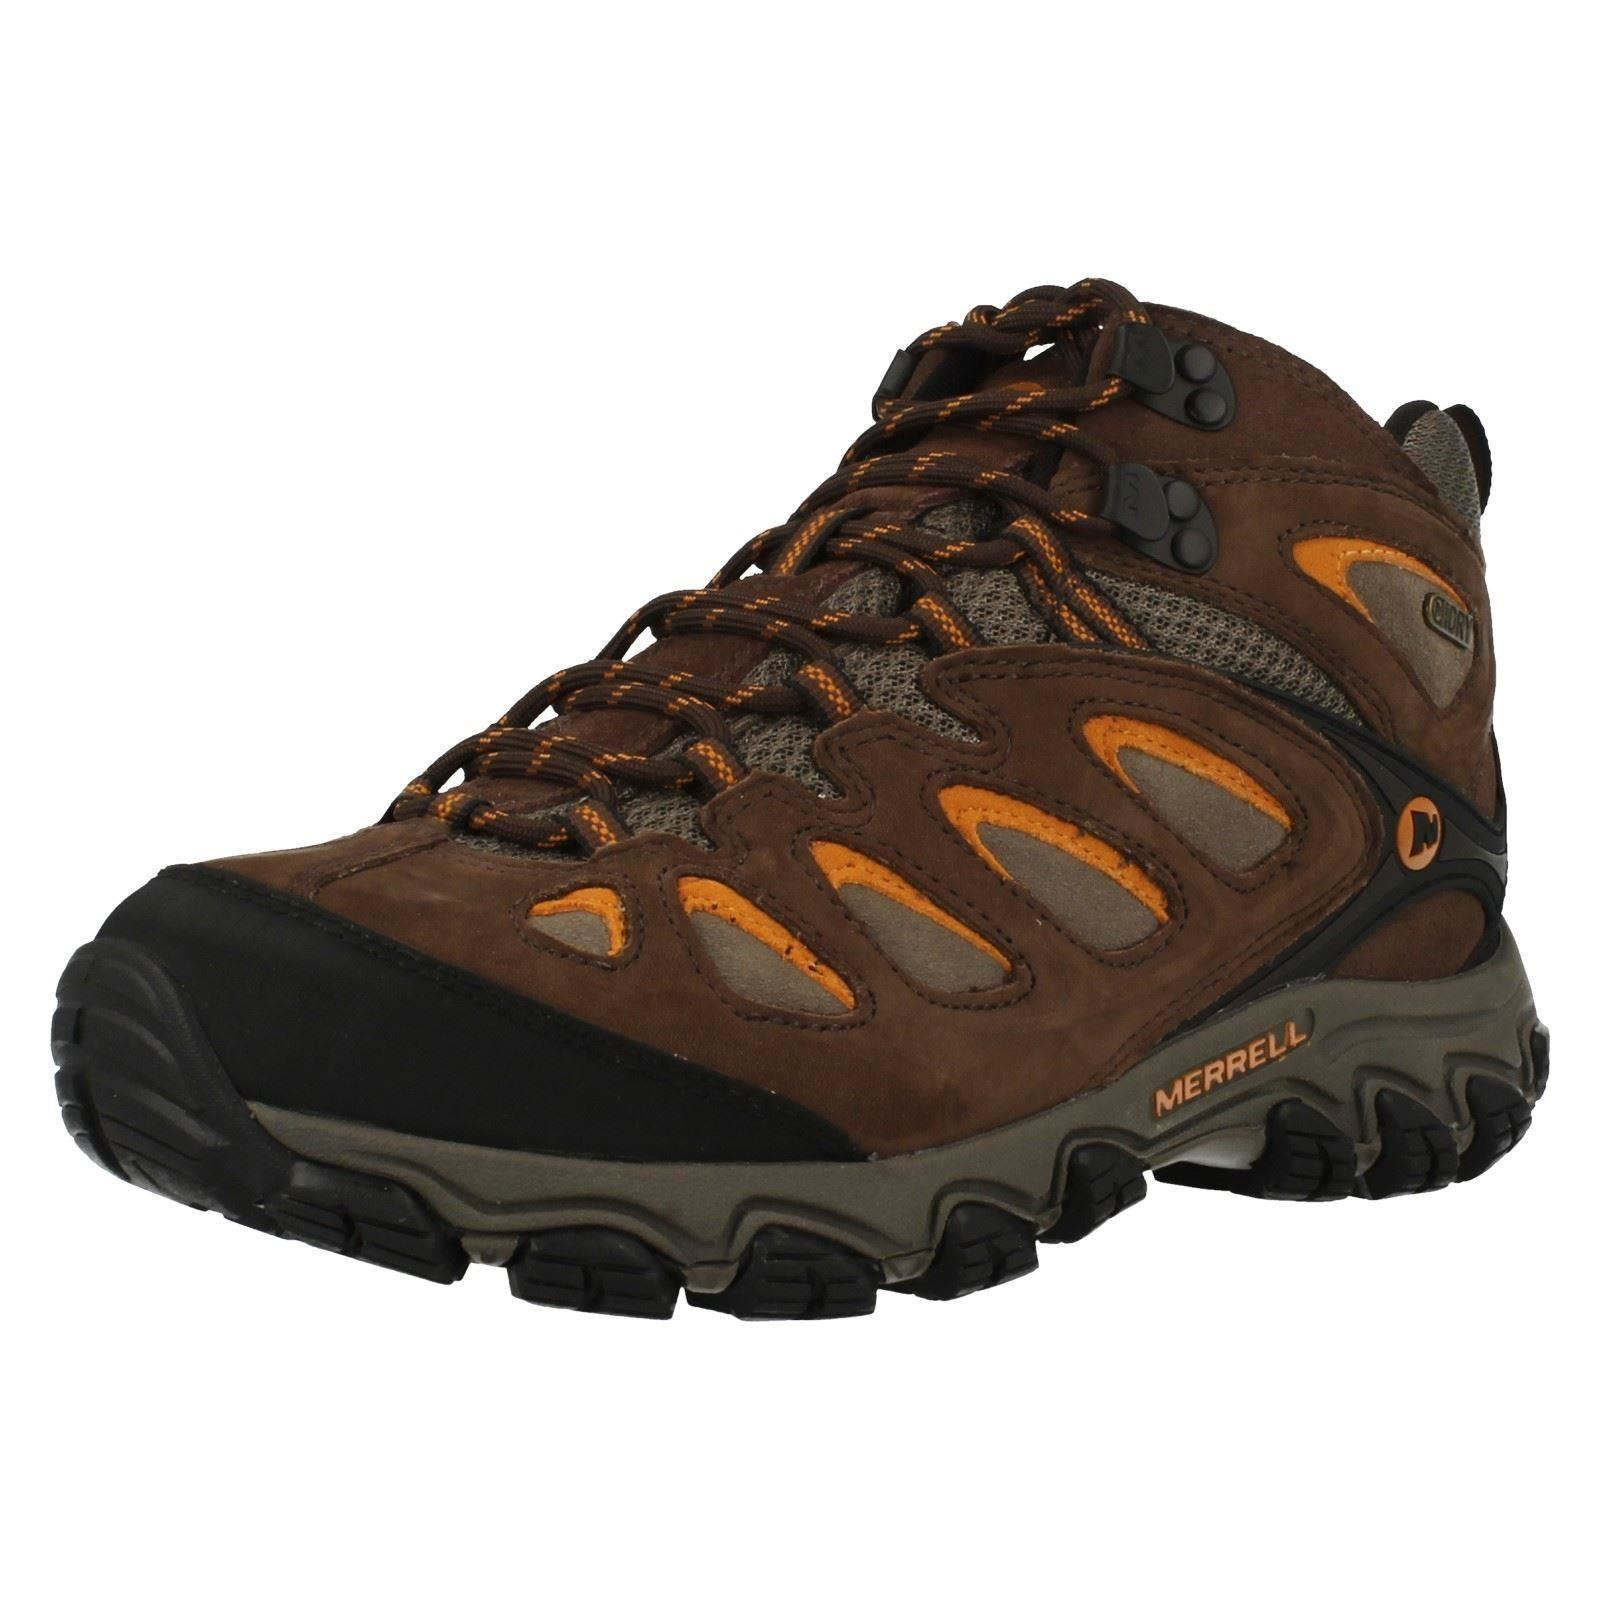 Merrell 'Pulsate Mid' Men's Brown Waterproof Walking Hiking Trail shoes